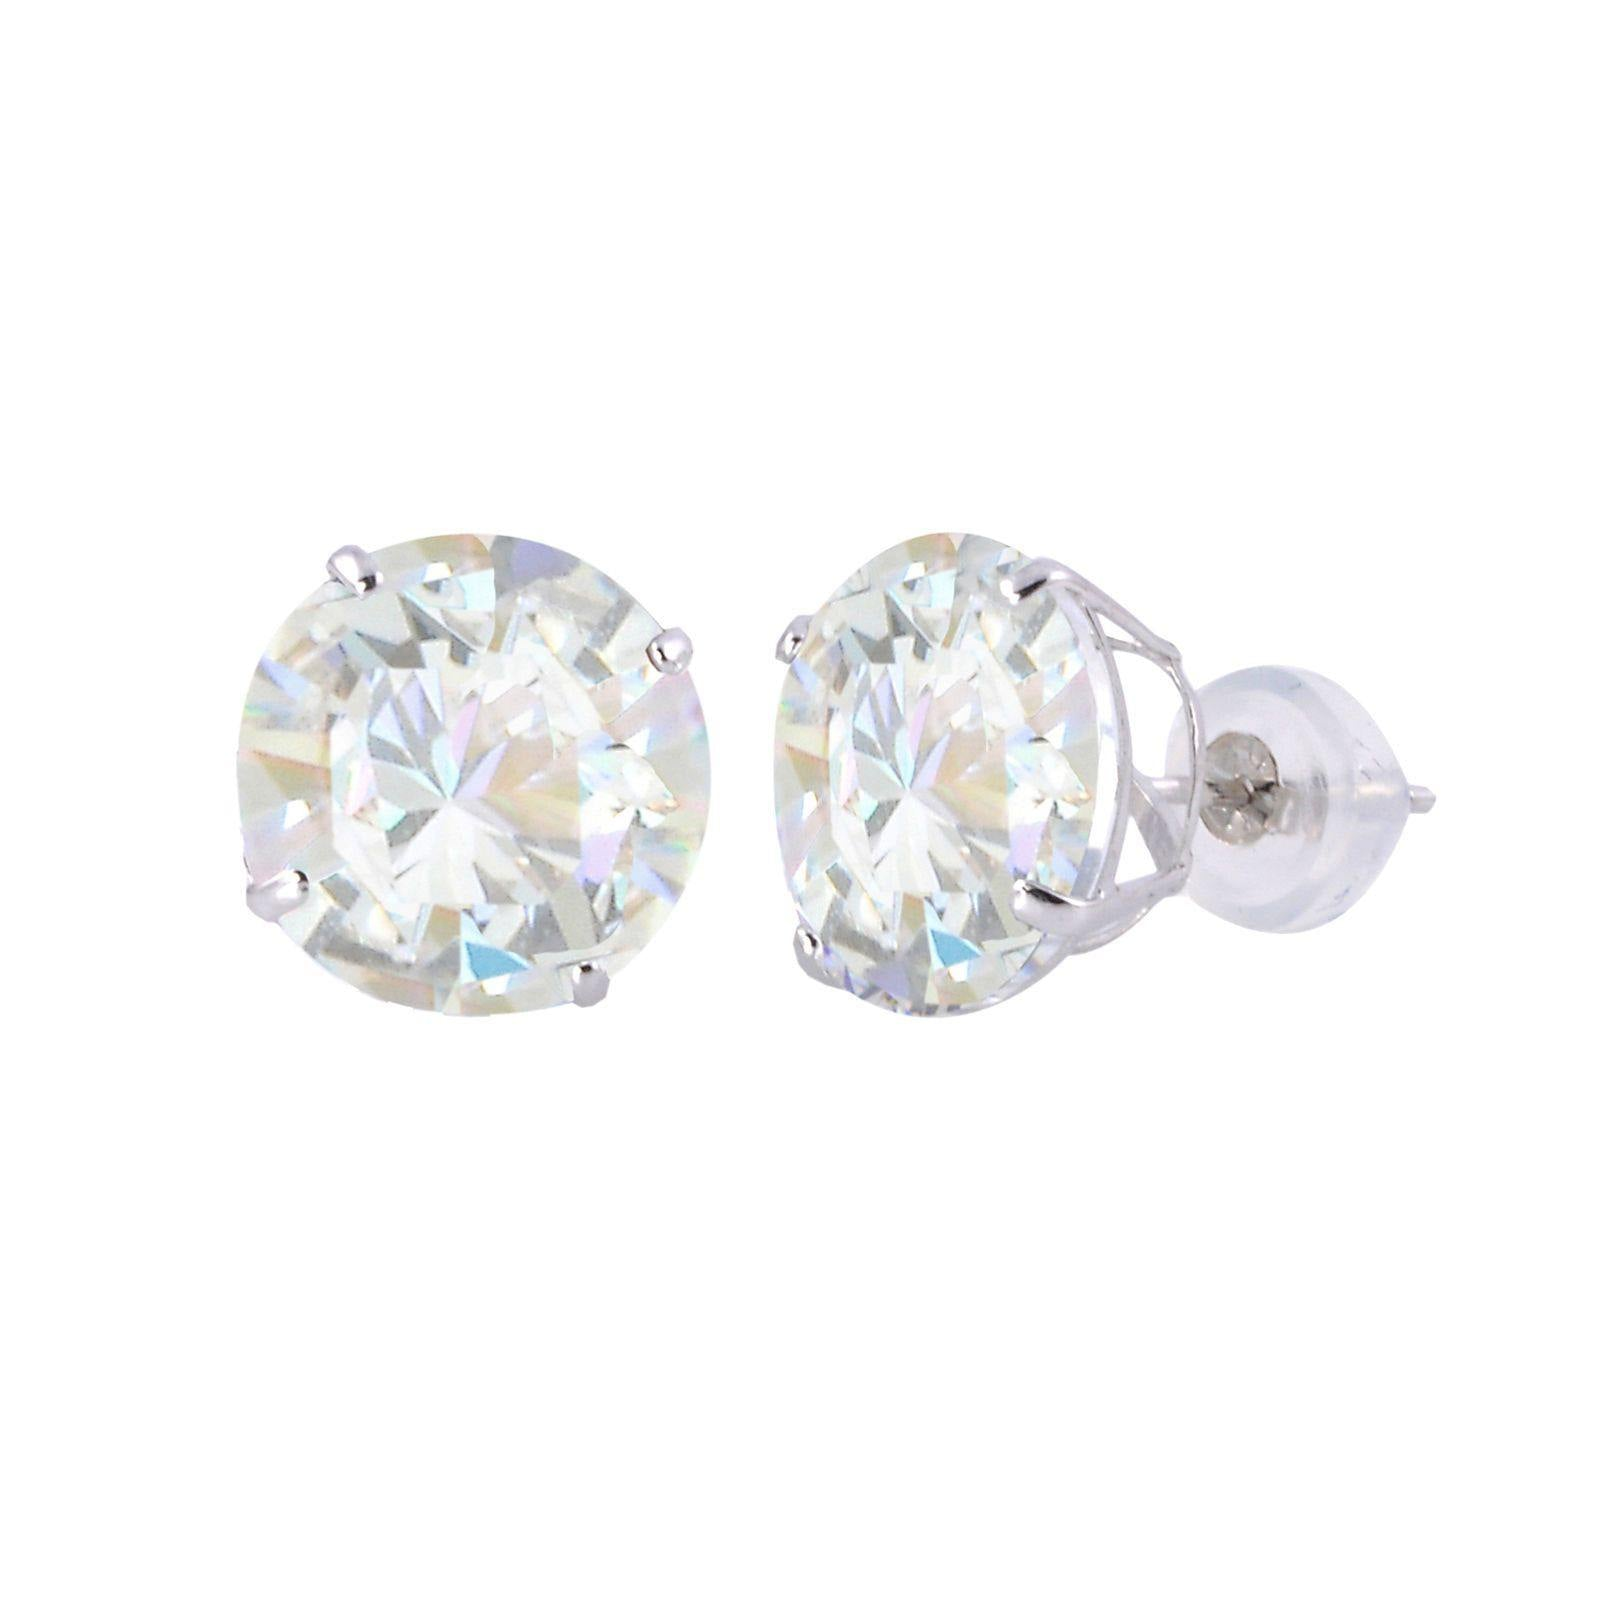 lewis main earrings online com stud zirconia white nina johnlewis b gold cubic rsp at buynina pdp john